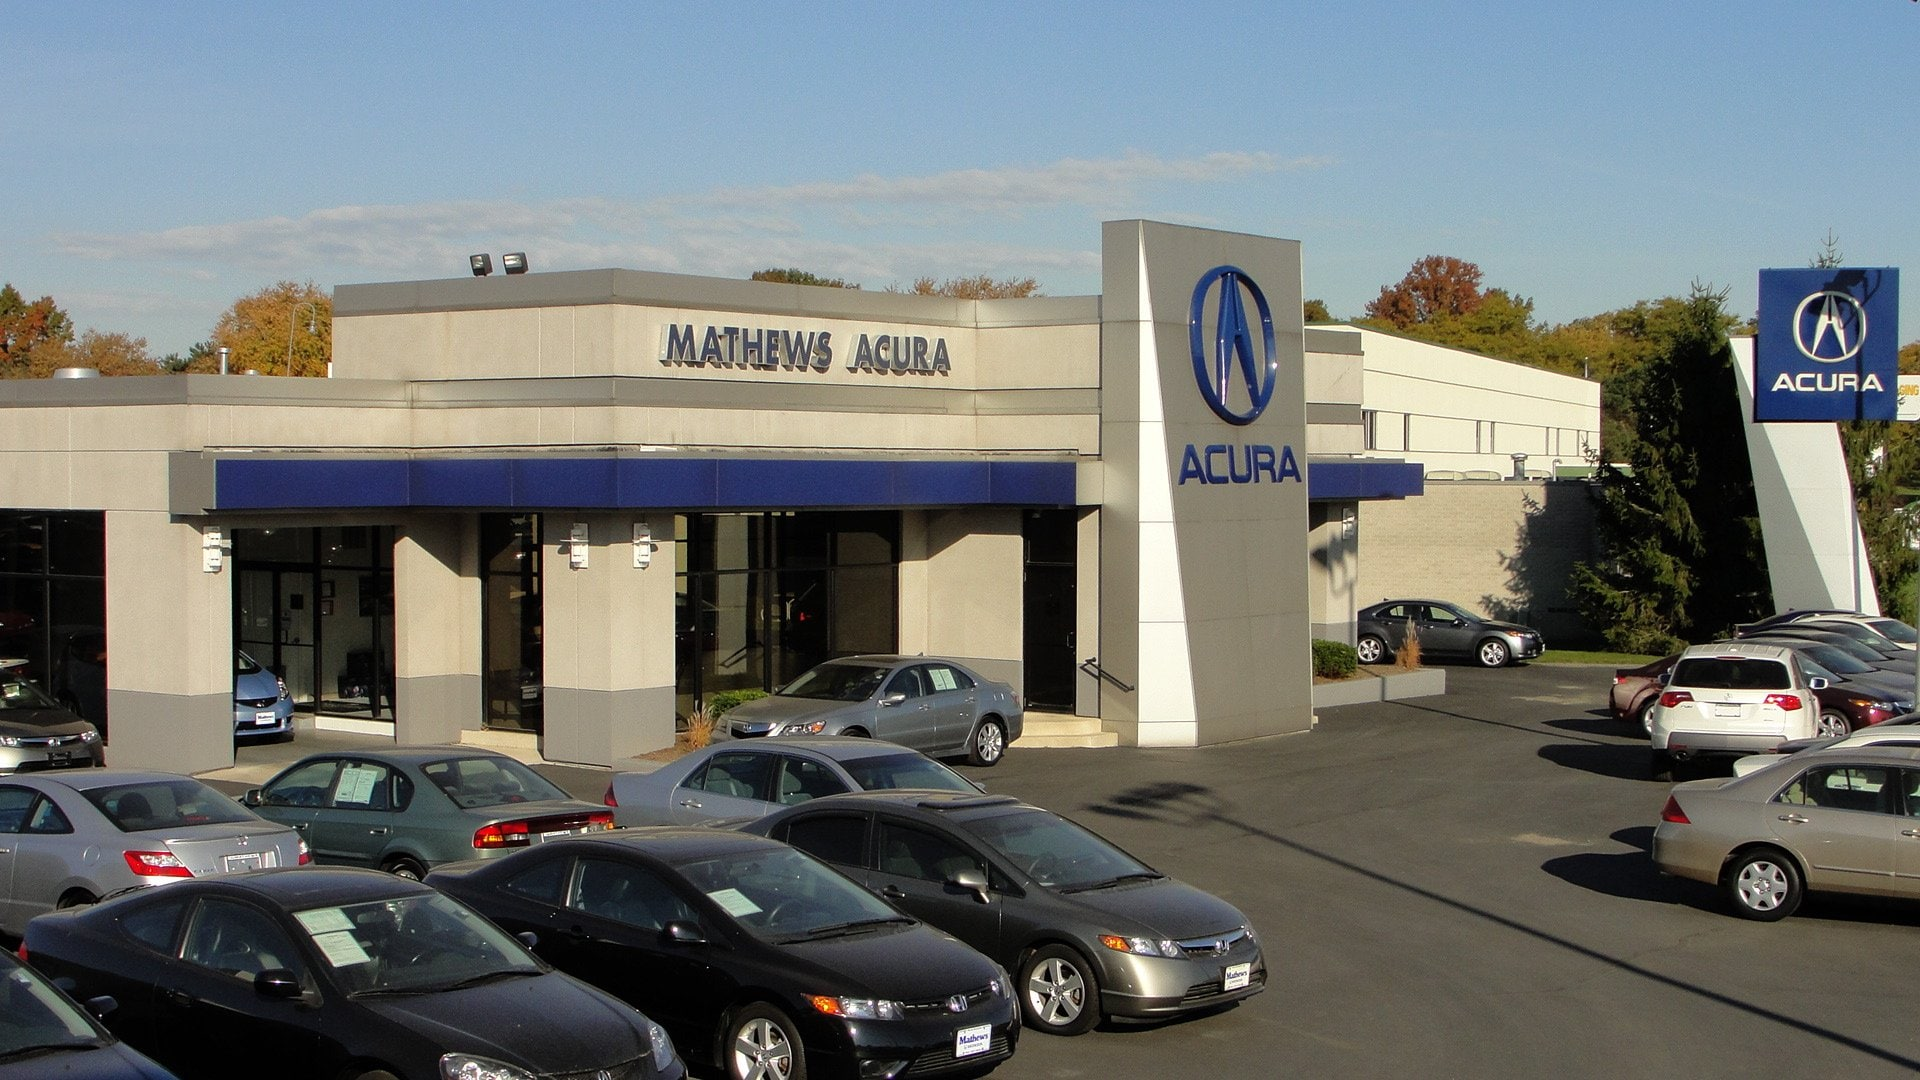 mathews acura new acura dealership in marion oh  the mathews auto group organization has always been a family owned and operated business starting when thurman mathews opened his first dealership in the